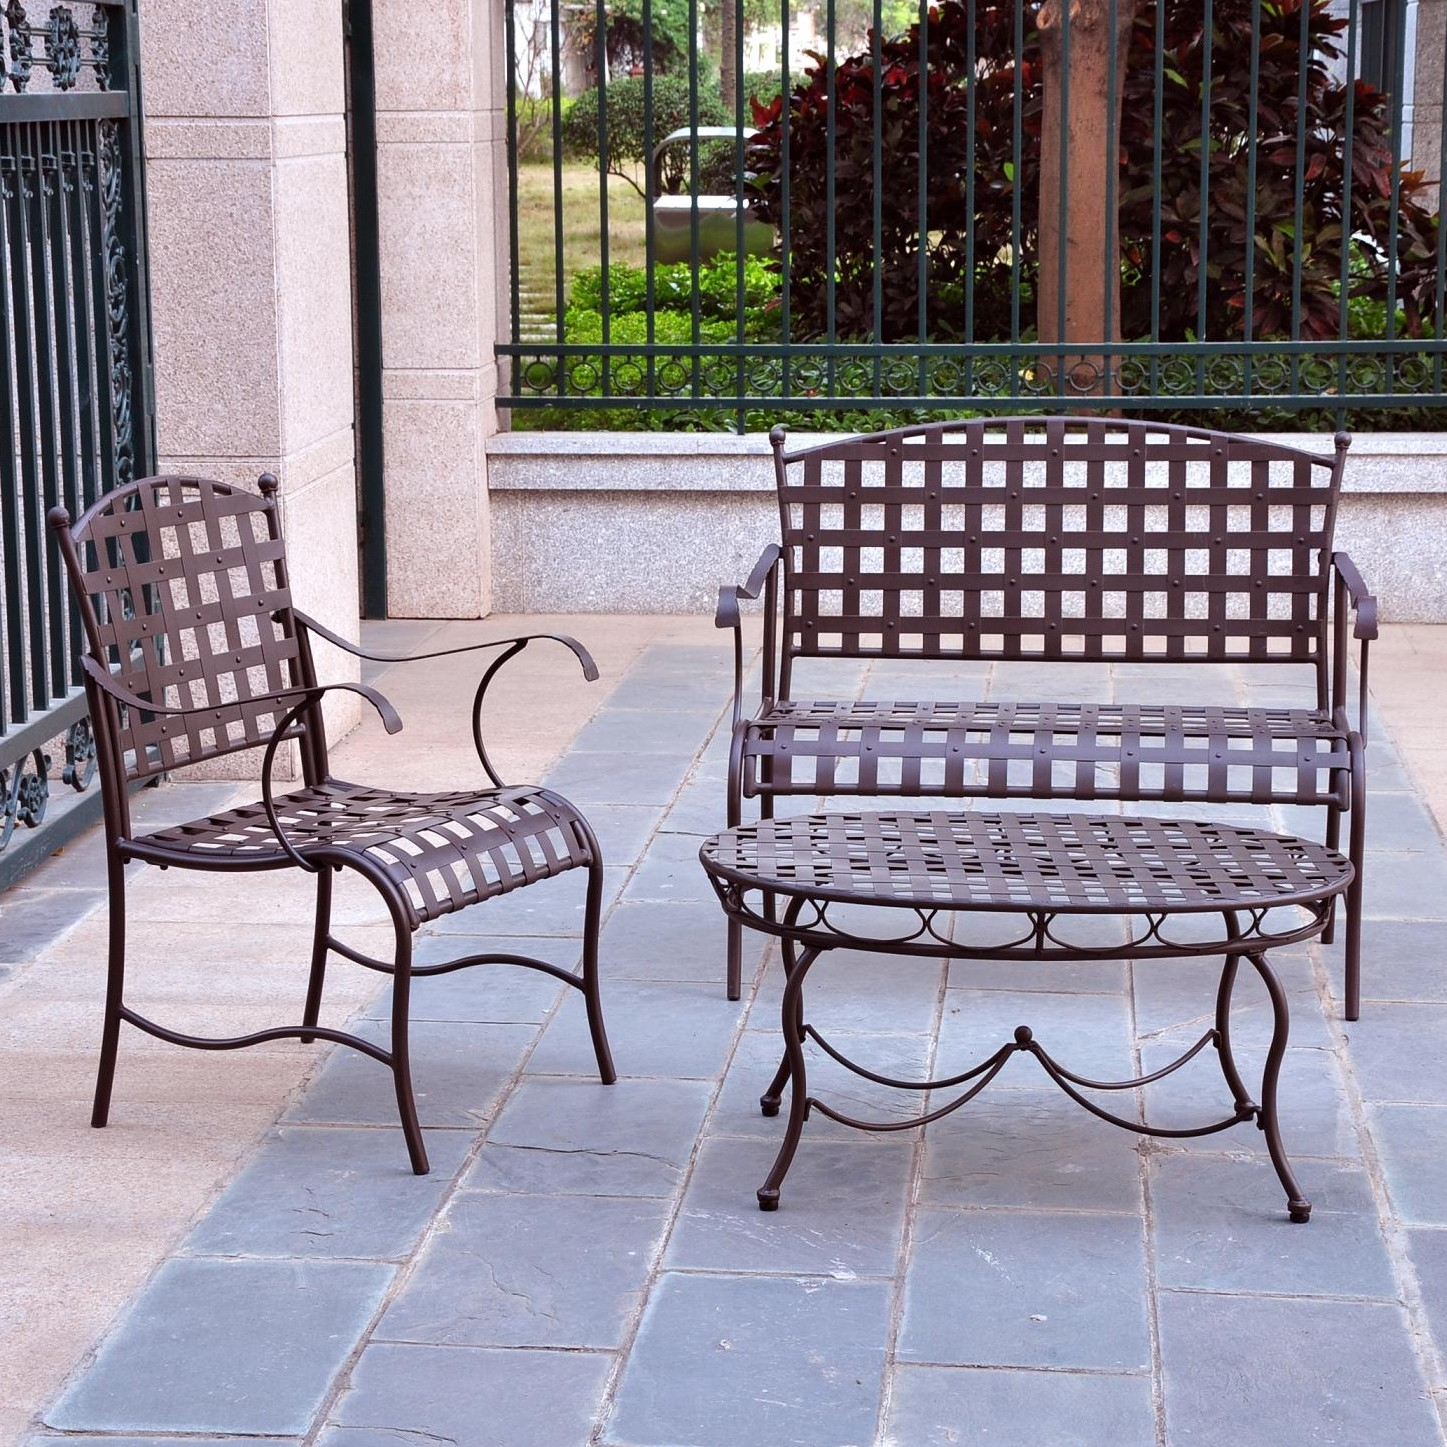 3 Piece Wrought Iron Patio Furniture Lounge Seating Group Set Fastfurnishings